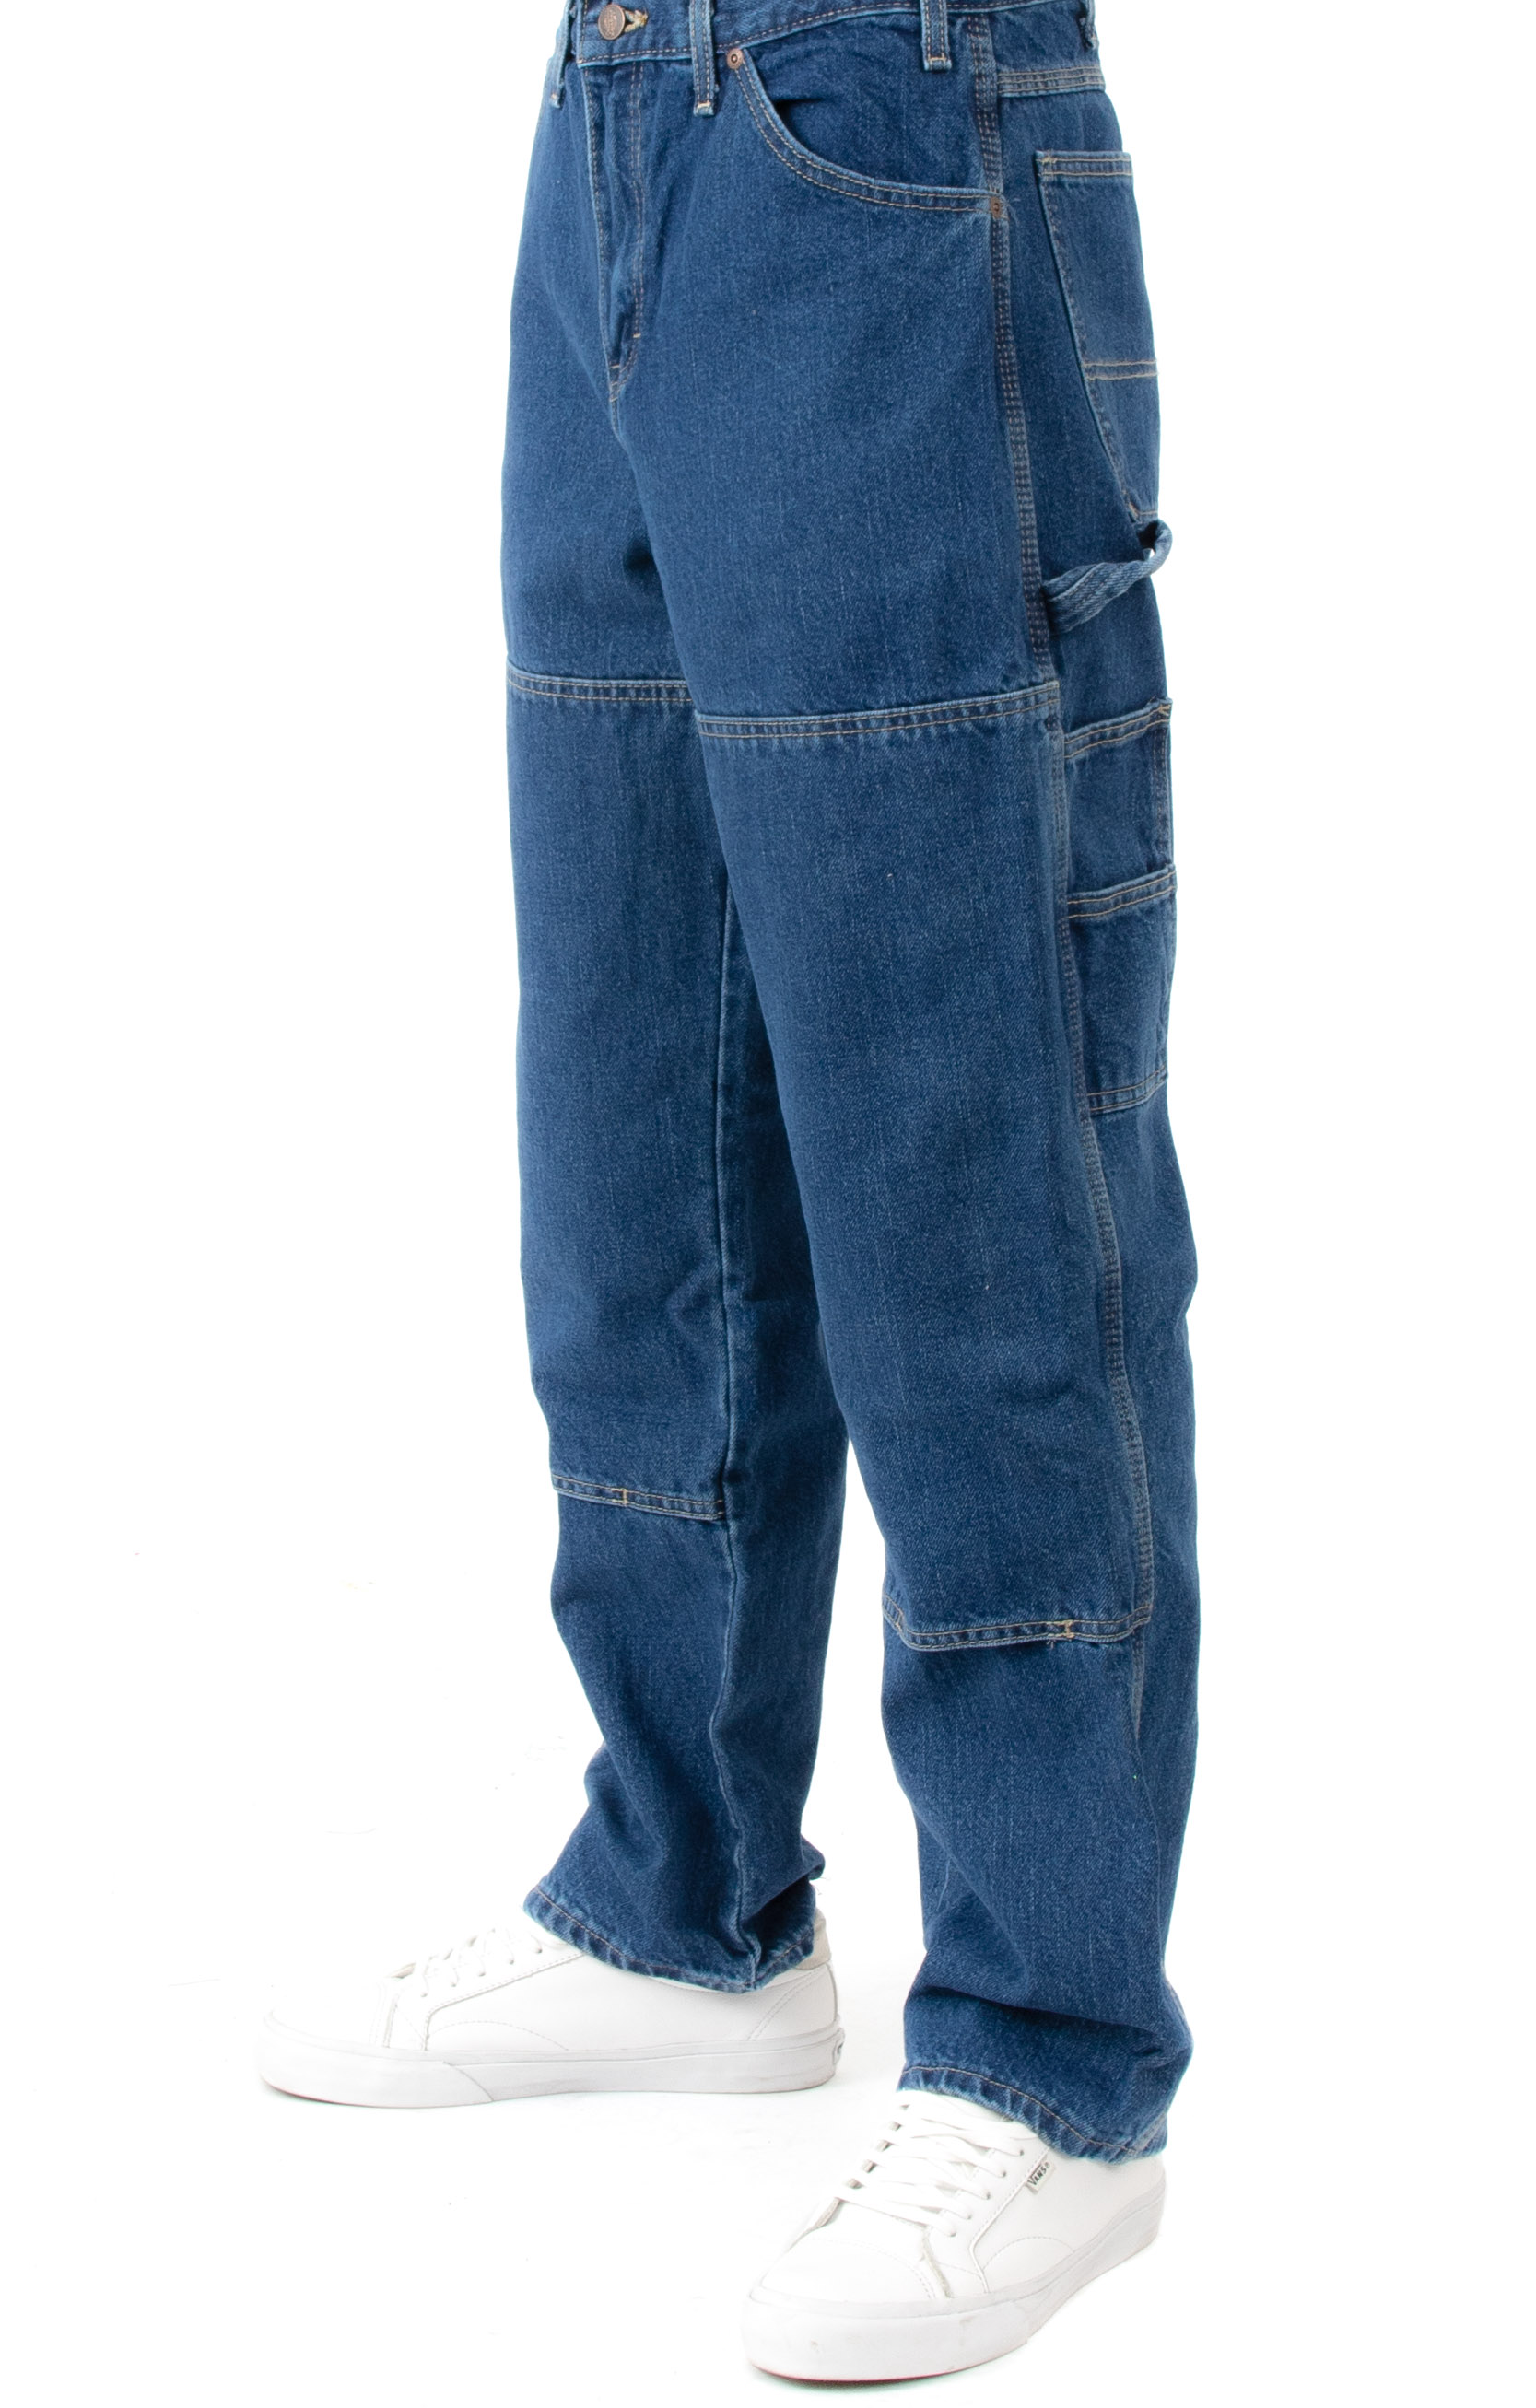 Relaxed Fit Double Knee Carpenter Denim Jeans - Stonewashed Indigo Blue